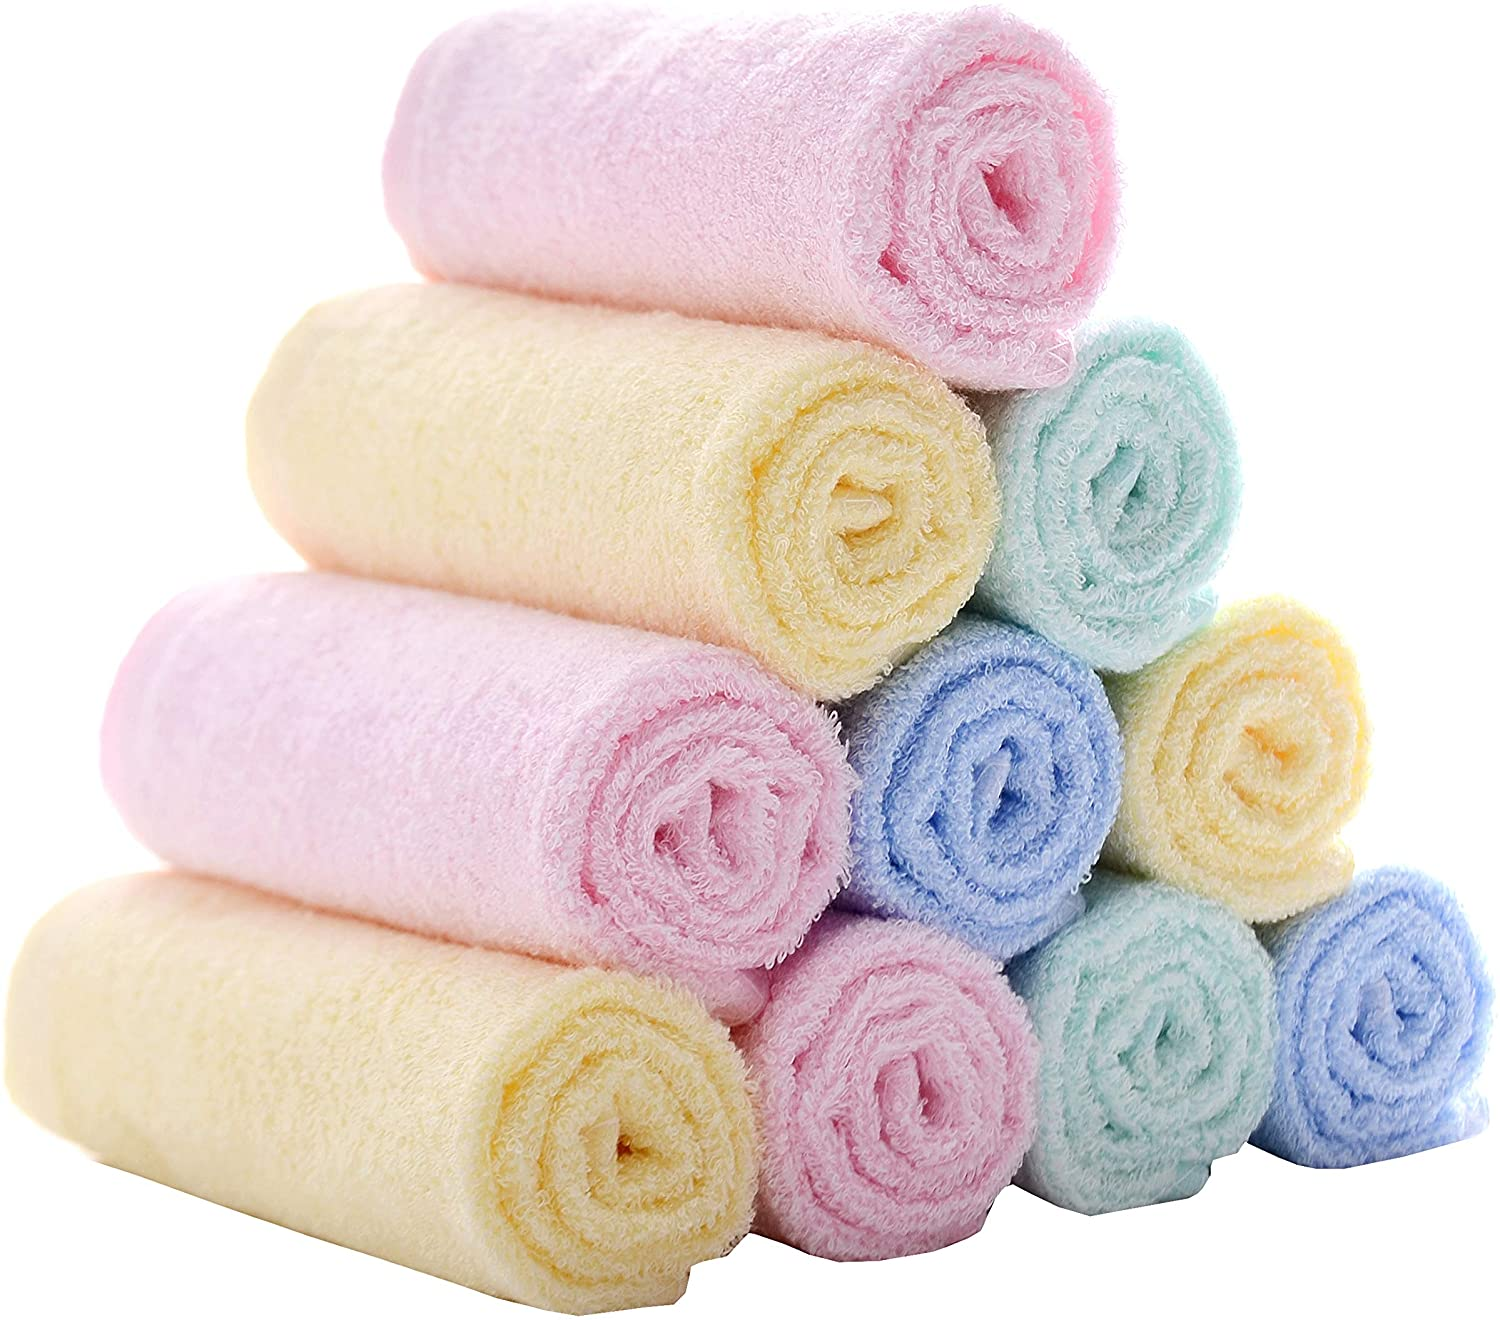 MUKIN BABY BAMBOO WASHCLOTHS BABY FACE TOWELS - EXTRA SOFT FOR NEWBORN   INFANT   KIDS   ADULTS - ULTRA SOFT FOR BABY REGISTRY AS SHOWER GIFT SET 12X12INCH. (12 PACK.)